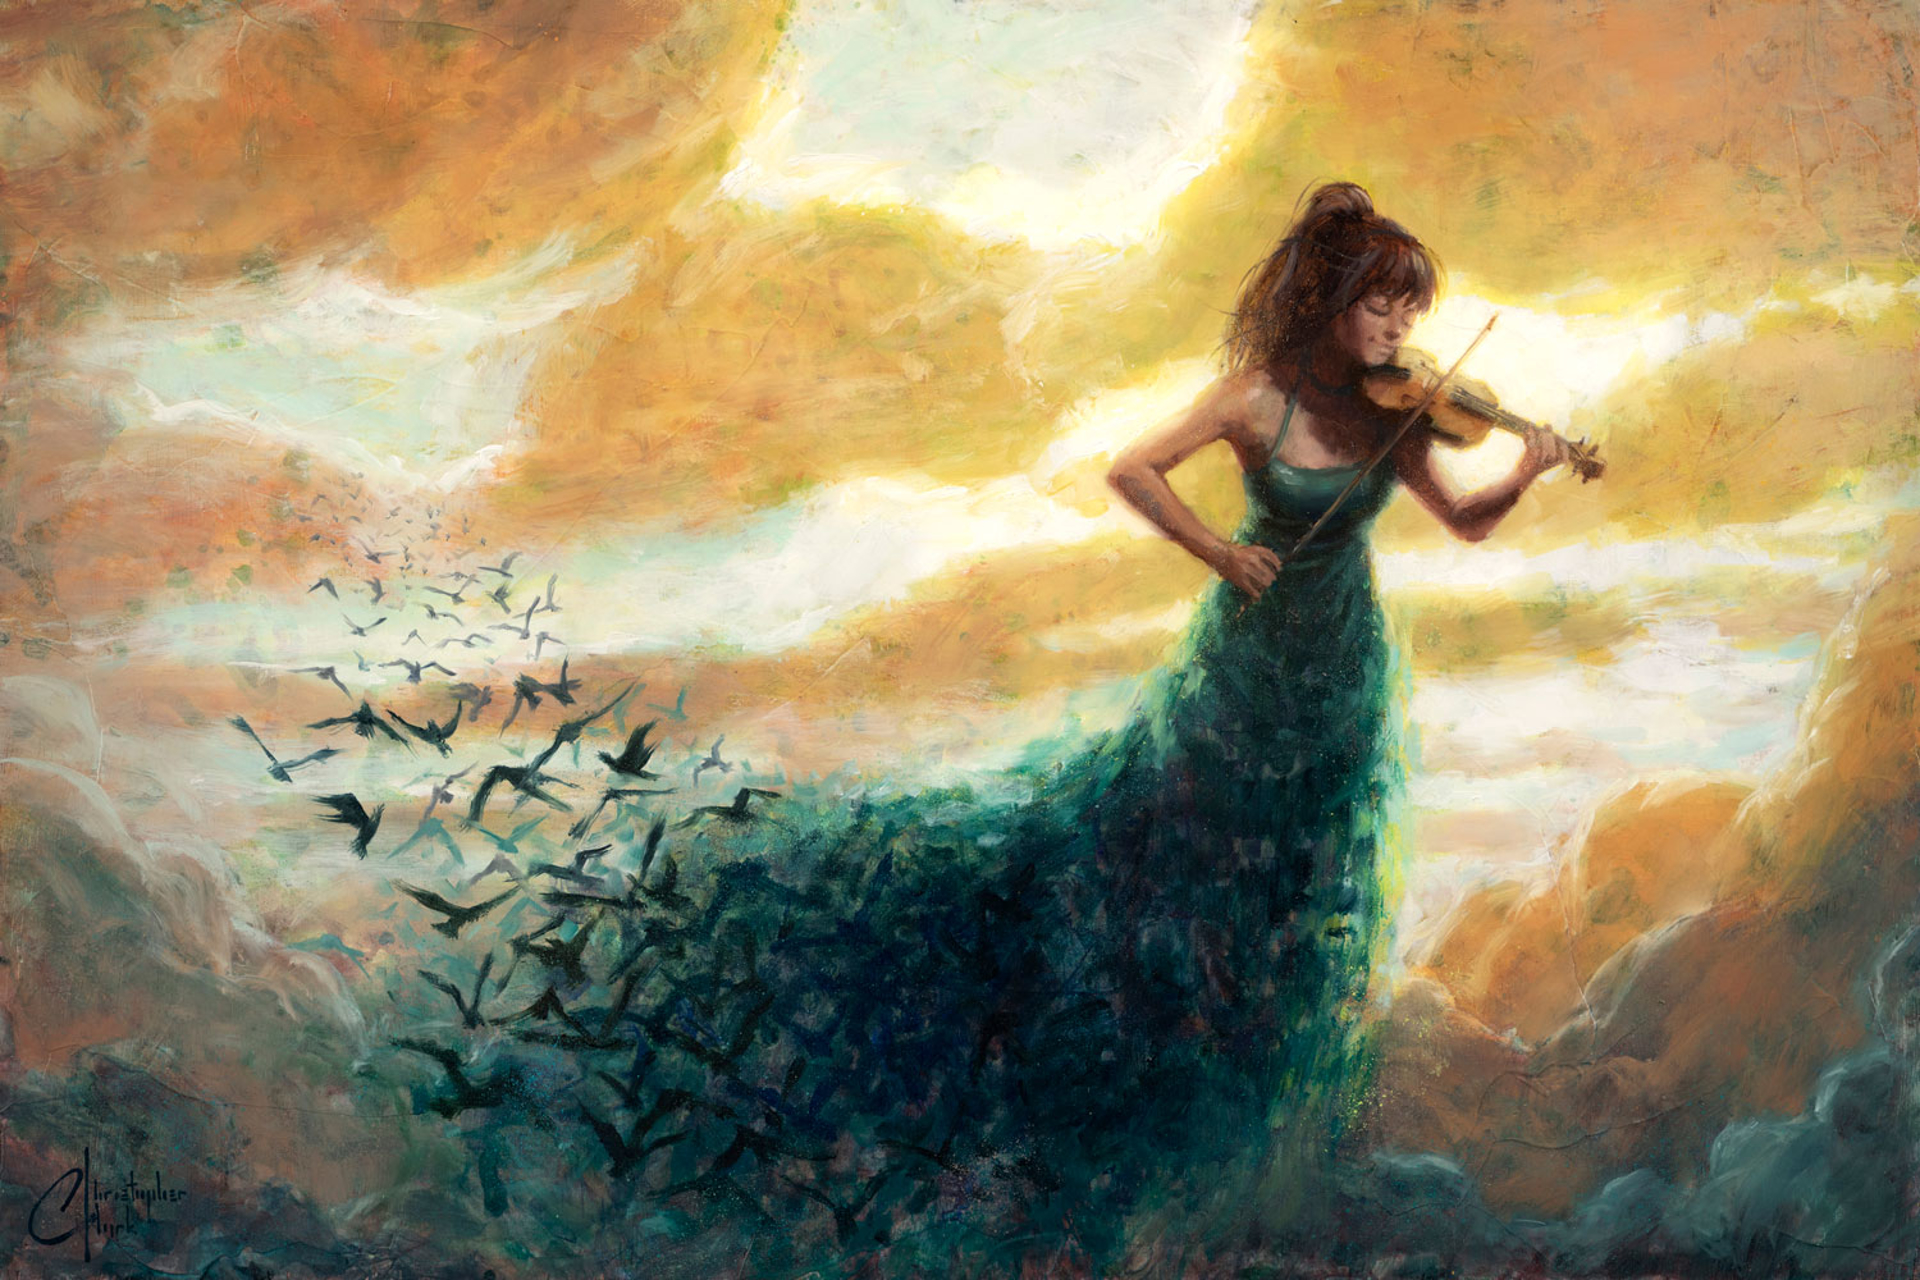 One Final Melody by Christopher Clark